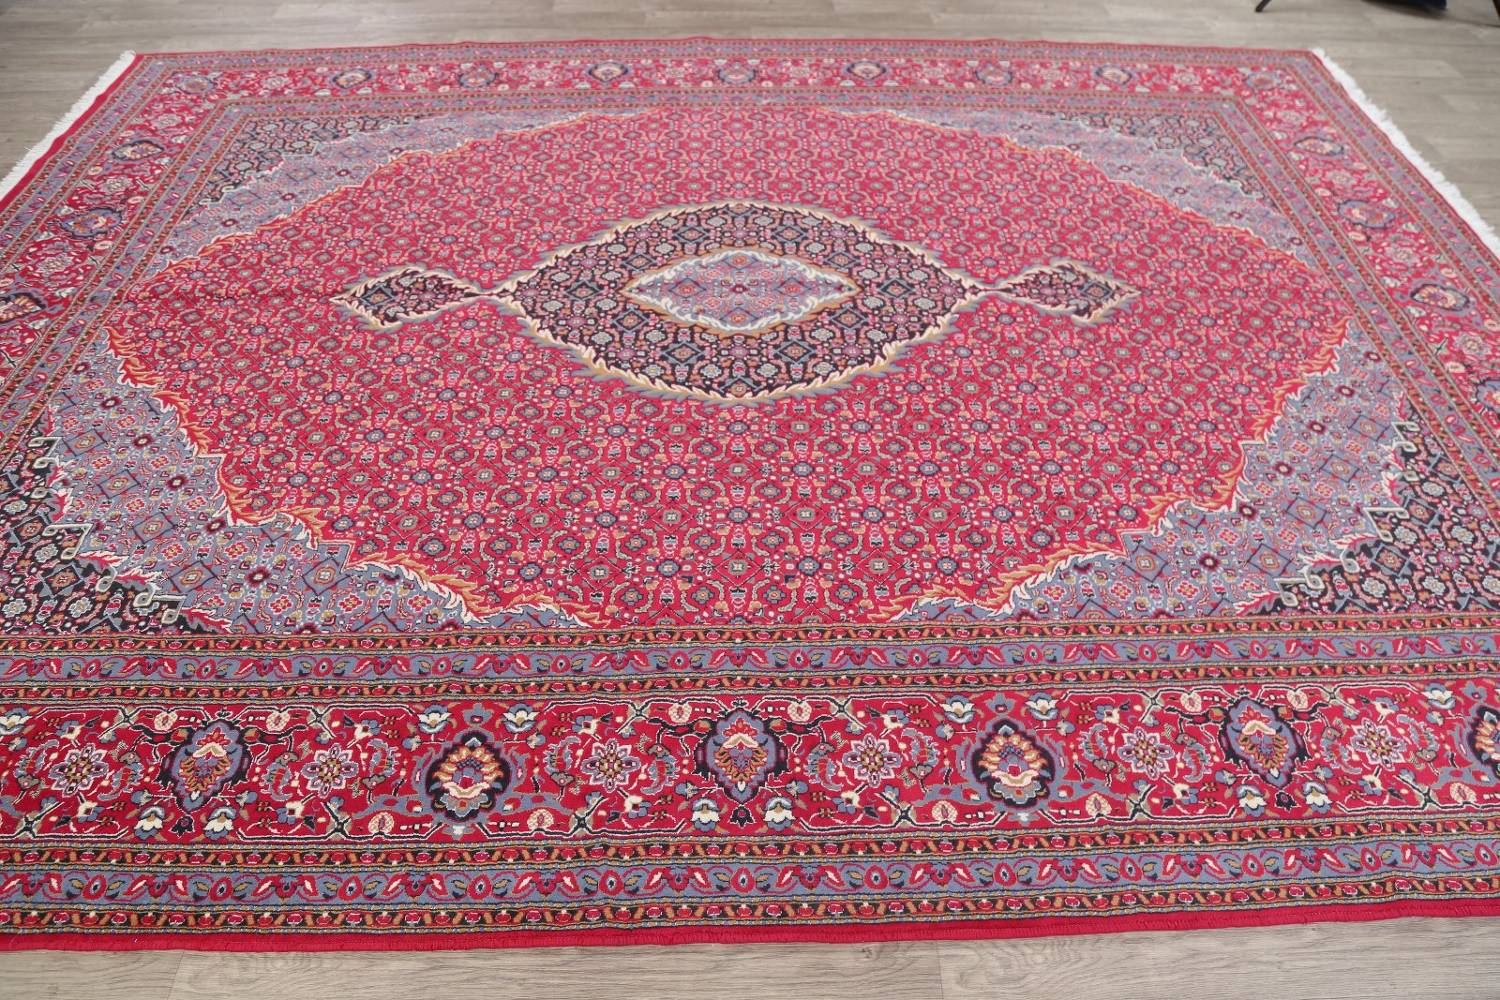 Soft Pile Floral Tabriz Persian Style Area Rug 10x13 image 12